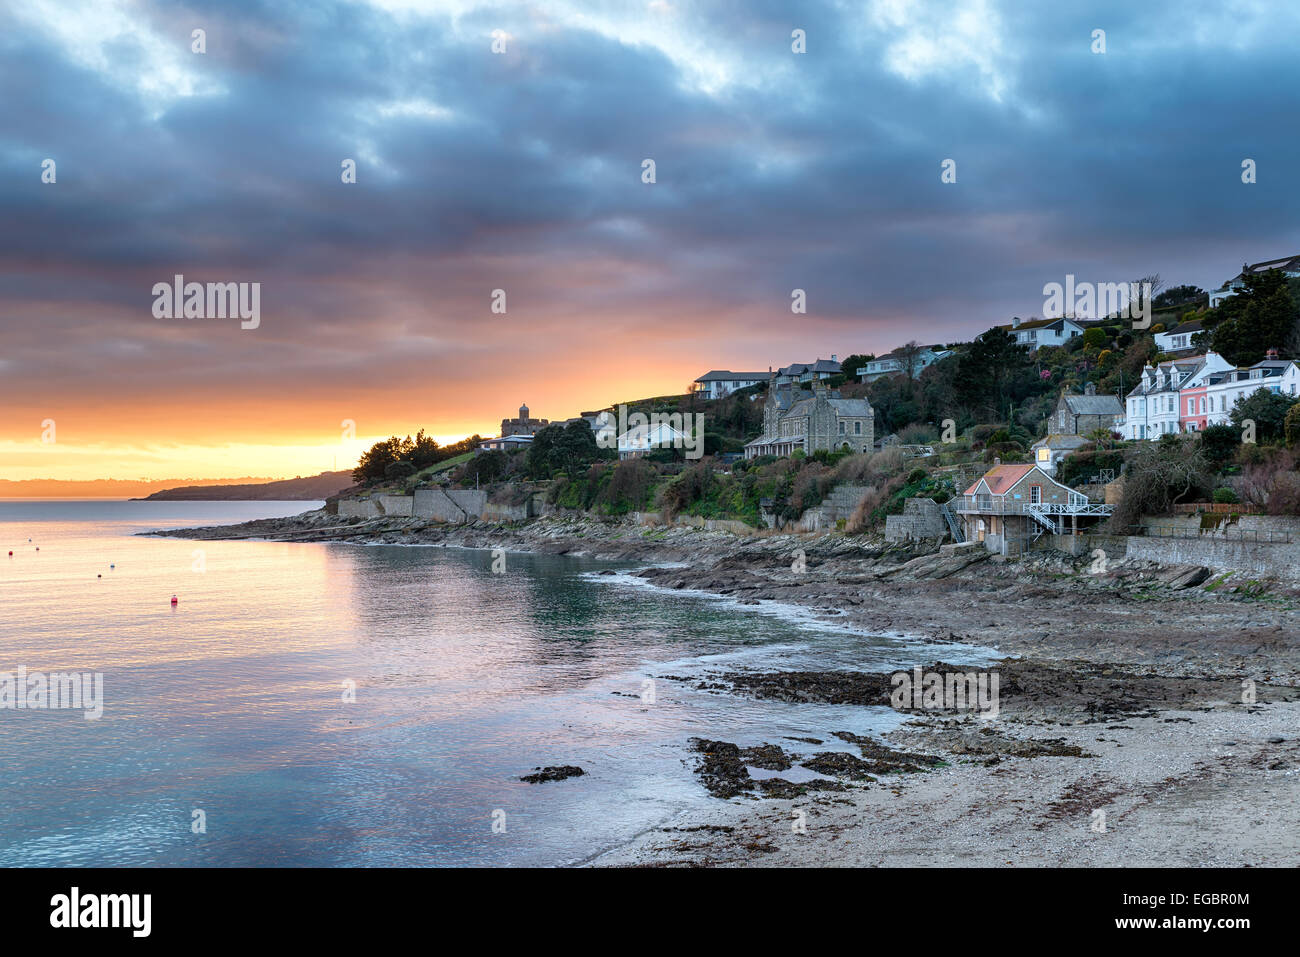 Dusk over Tavern beach at St Mawes near Falmouth in Cornwall - Stock Image